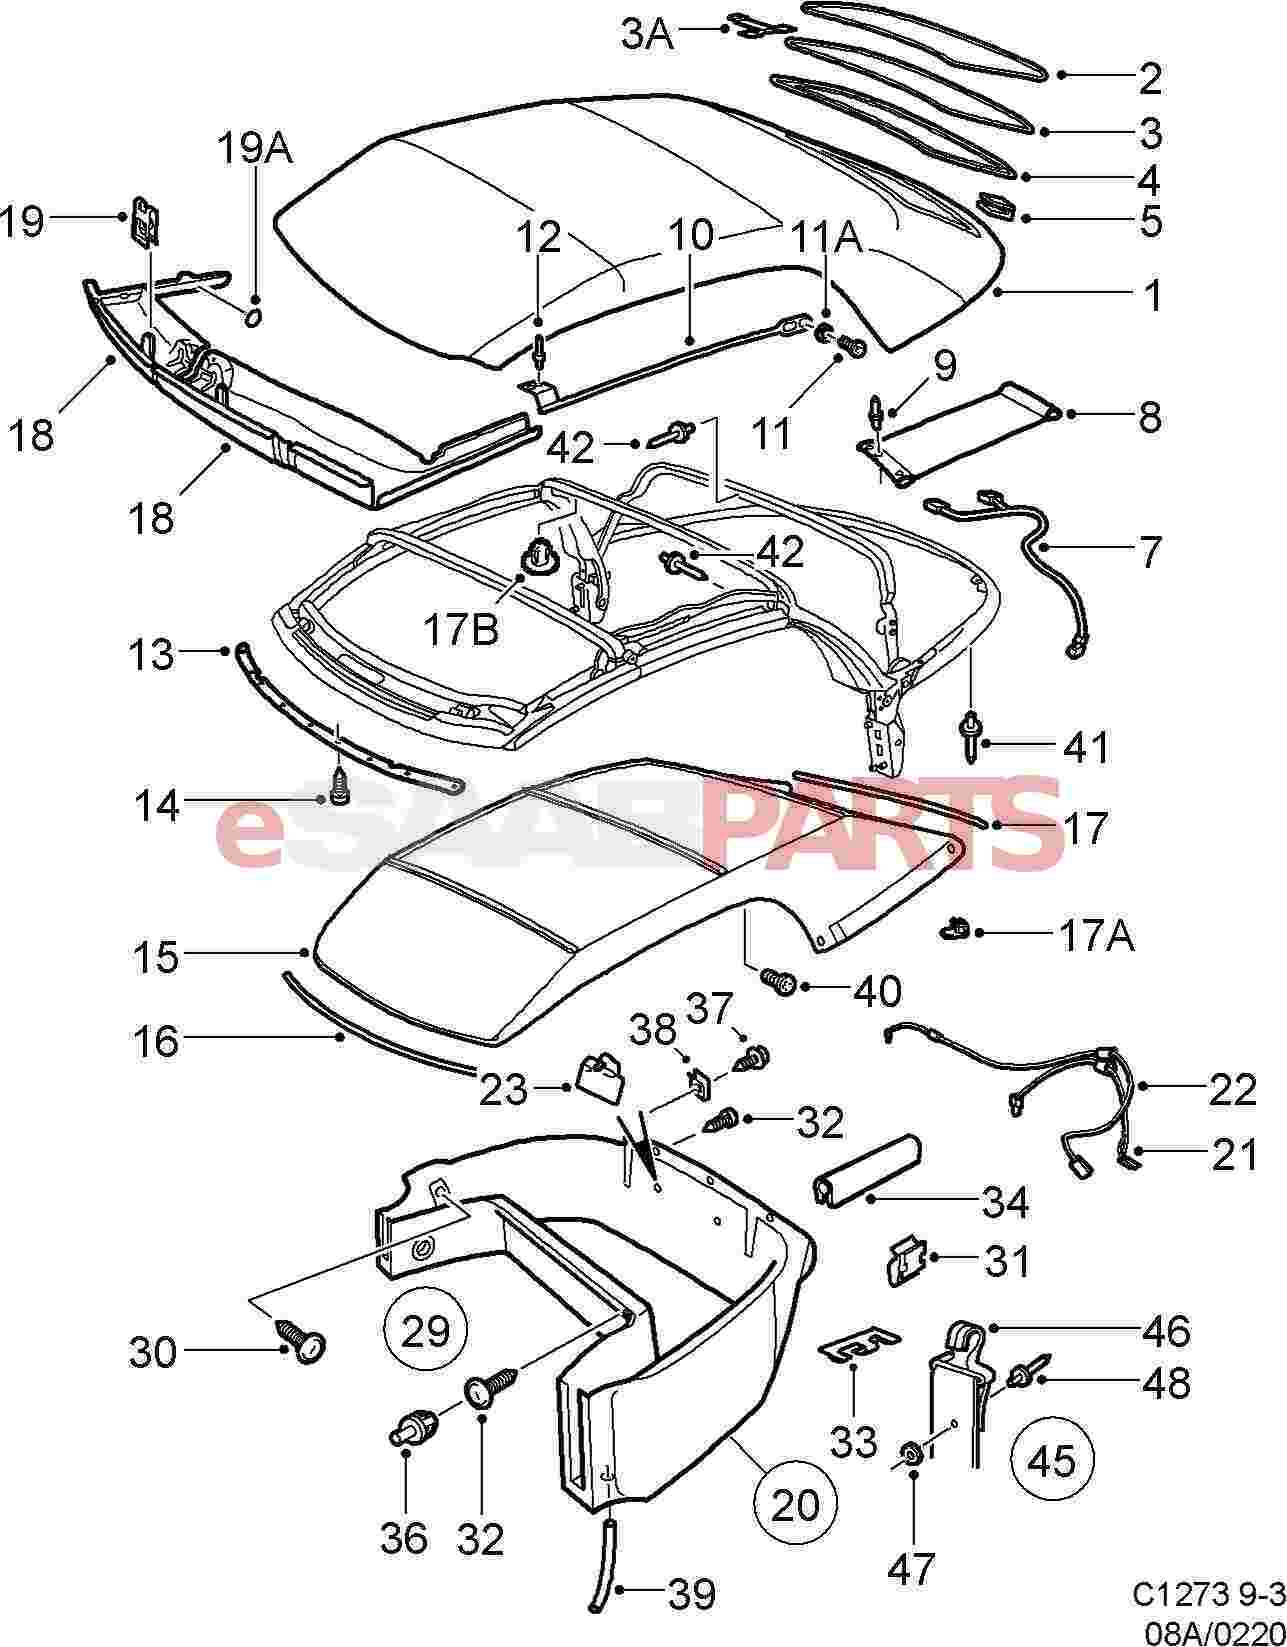 hight resolution of esaabparts com saab 9 5 wiring diagram pdf saab 9 5 towbar wiring diagram